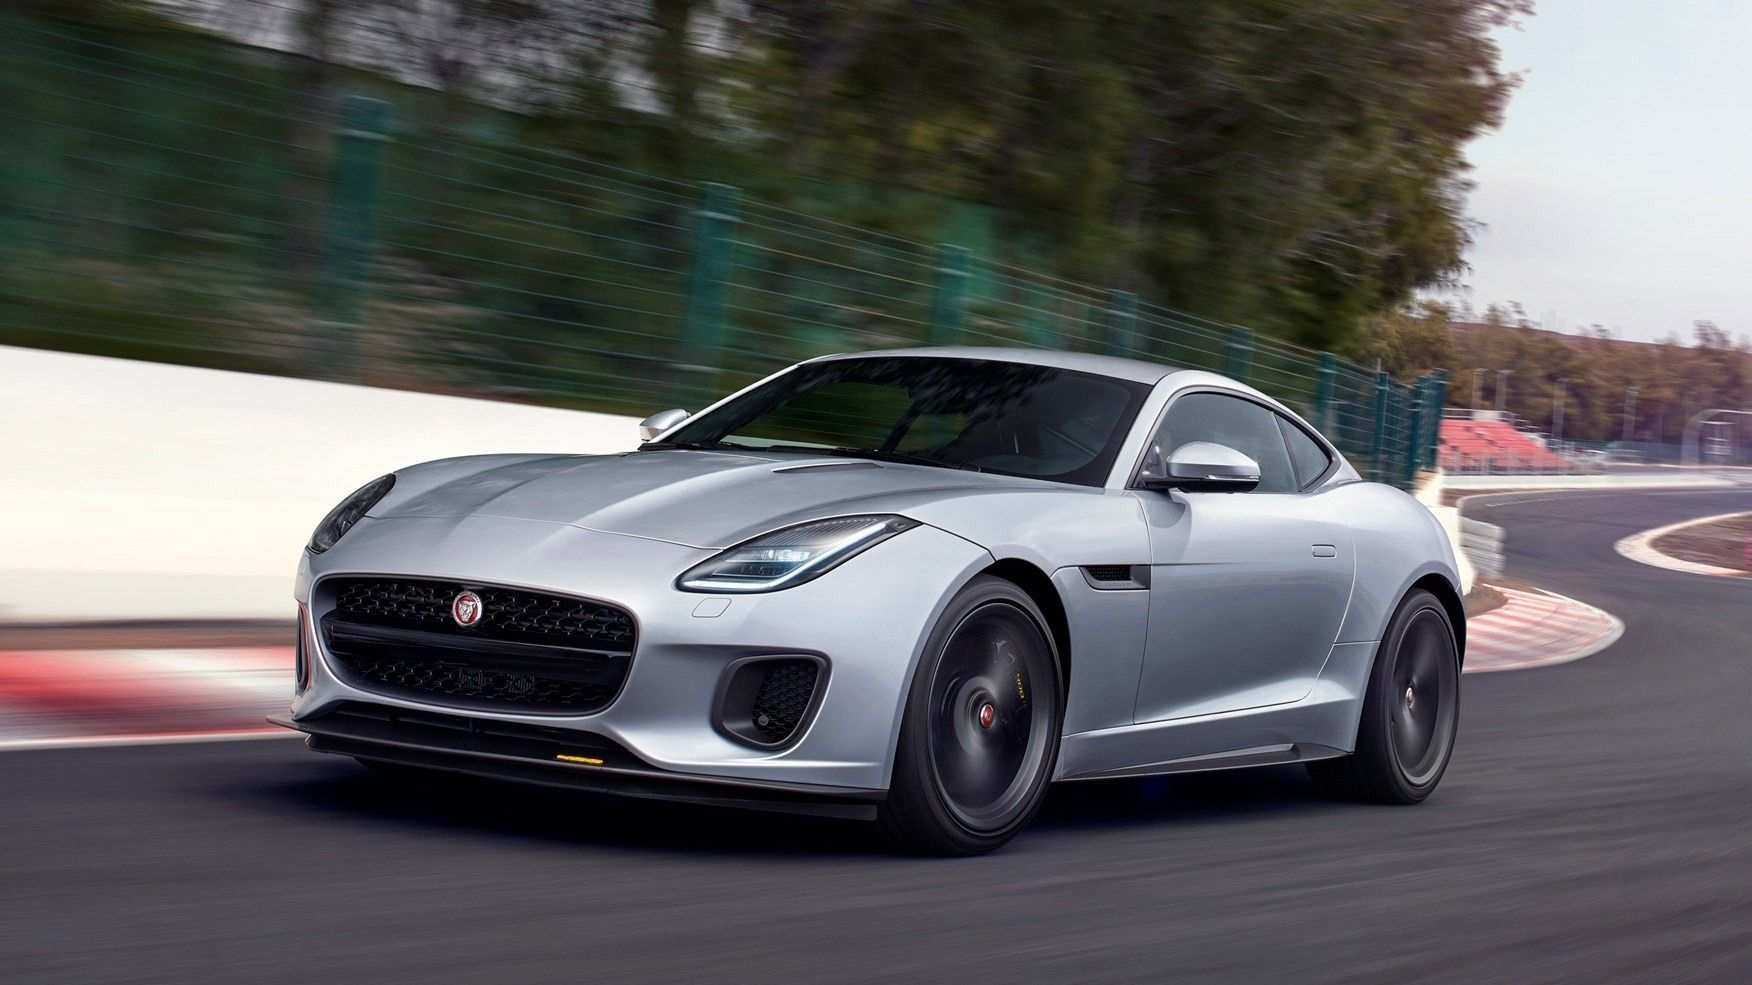 99 New Best 2019 Jaguar F Type Release Date Review And Release Date Prices with Best 2019 Jaguar F Type Release Date Review And Release Date